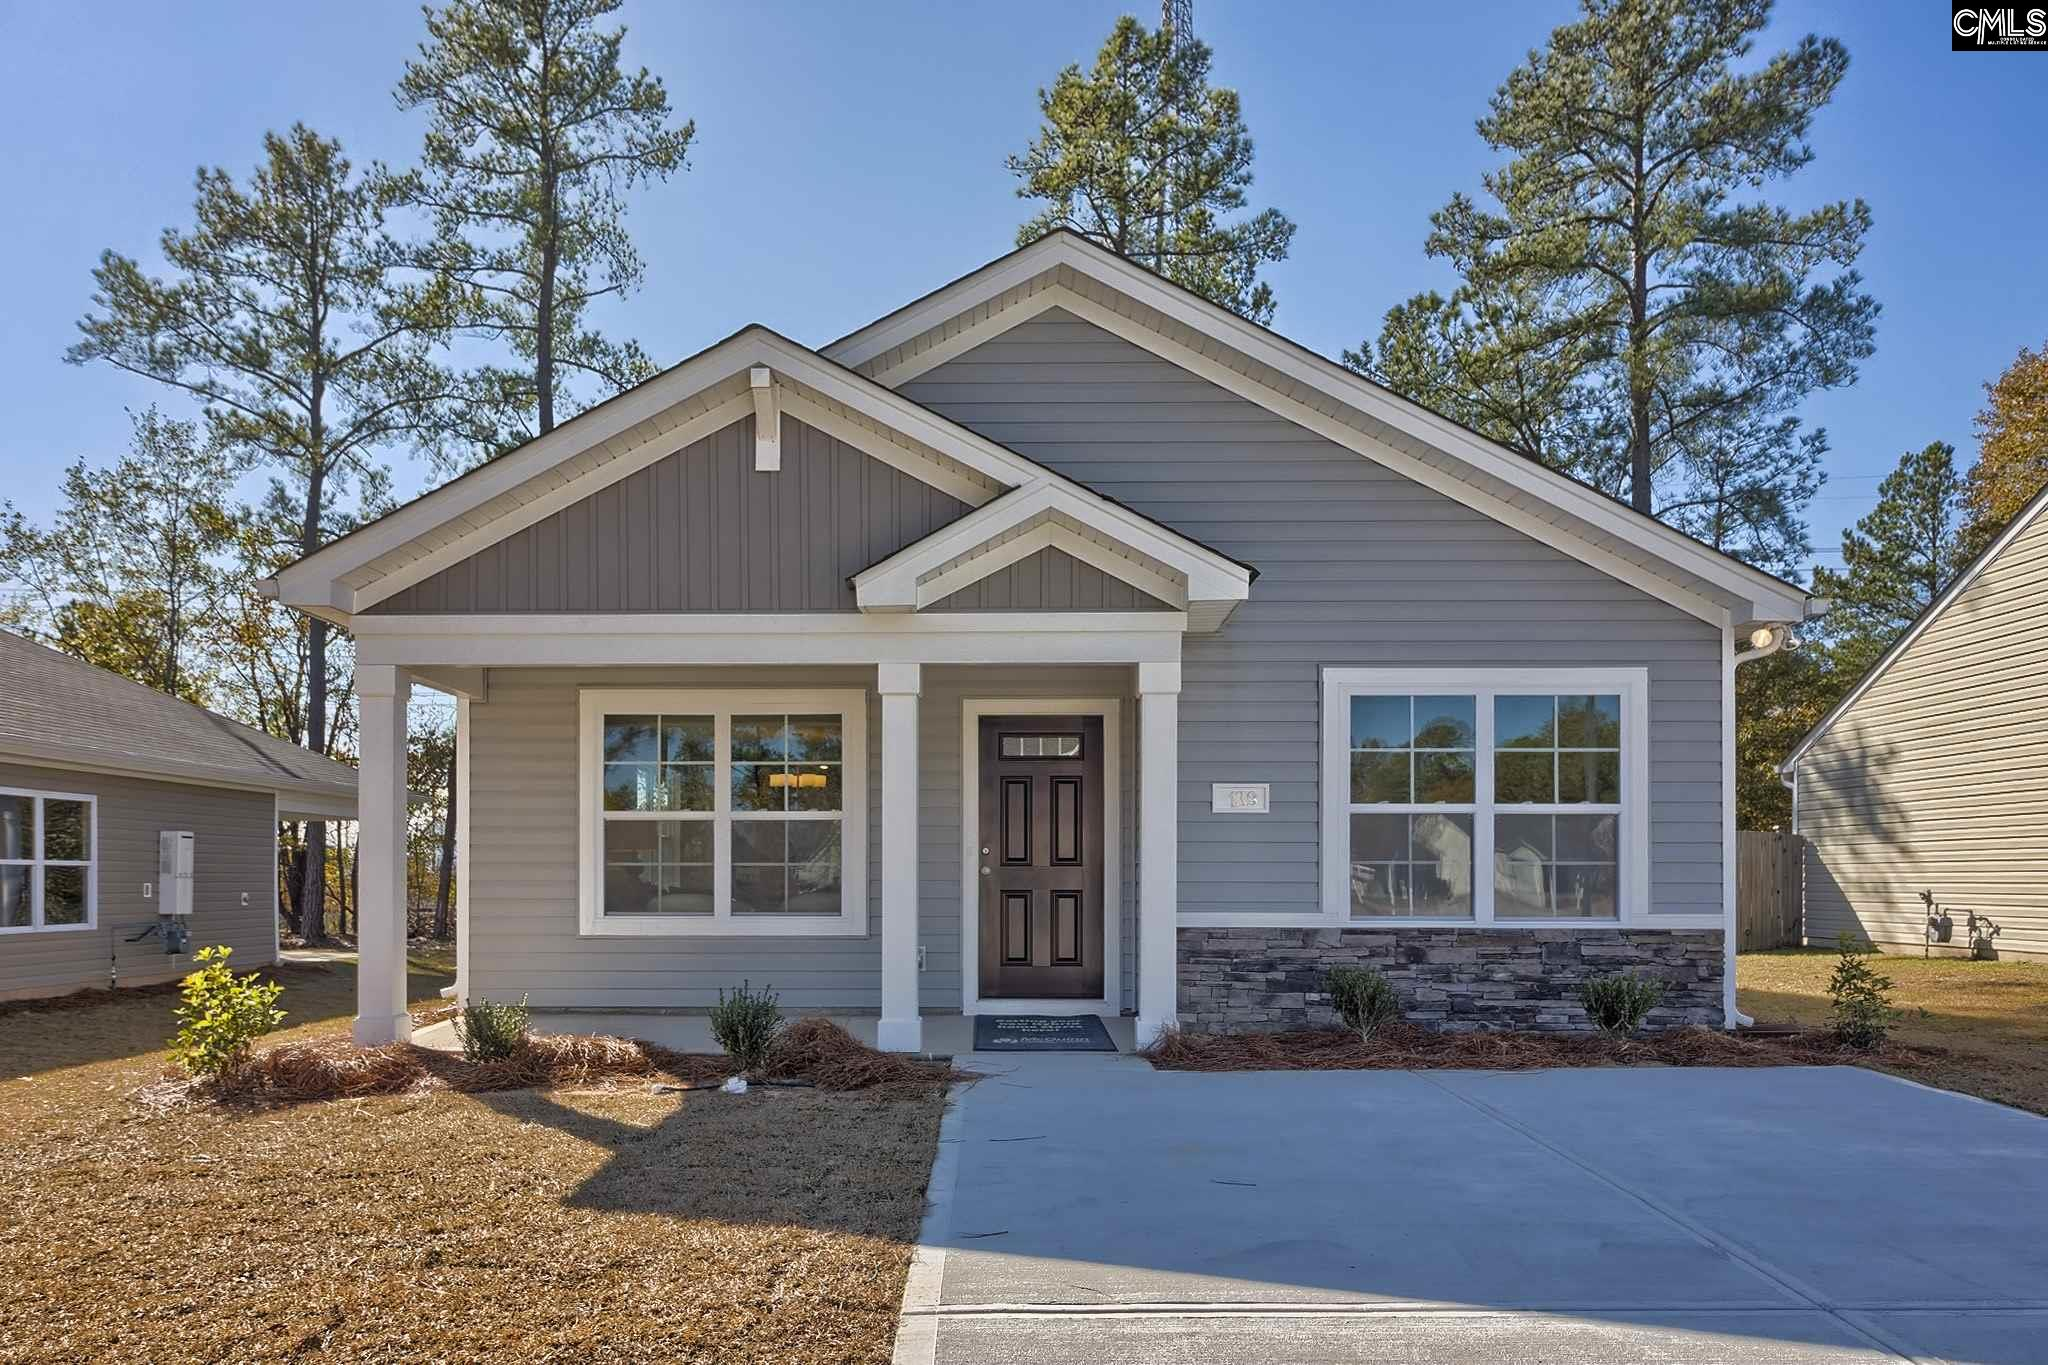 300 Pickwick Columbia, SC 29223